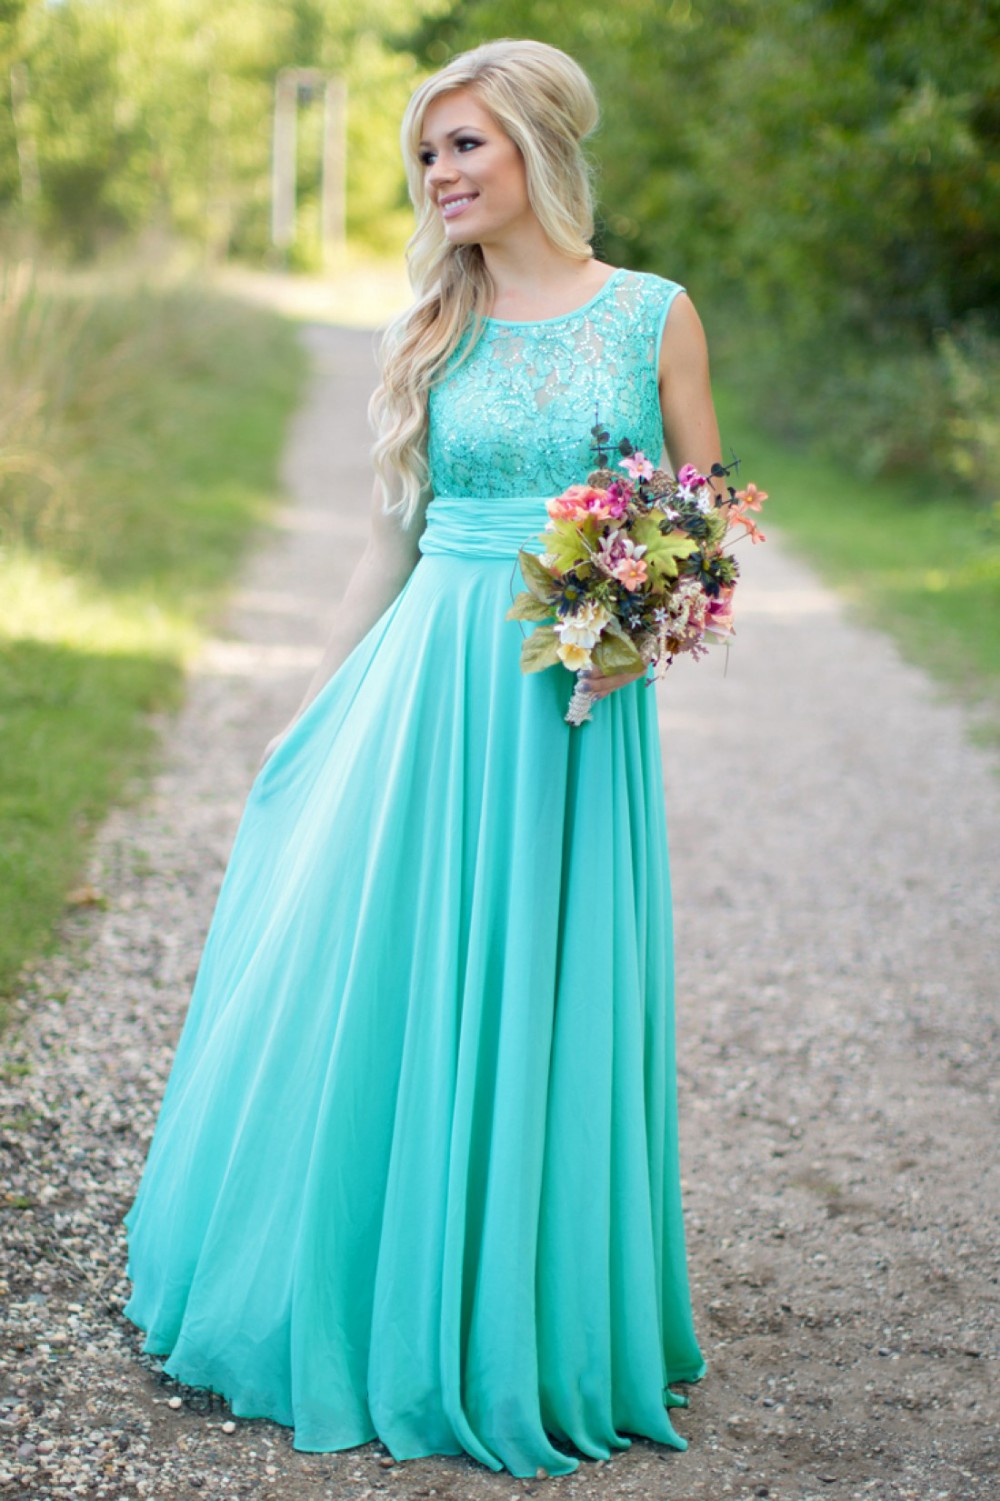 New Fashion Long Bridesmaid Dresses For Wedding Brides,Chiffon ...